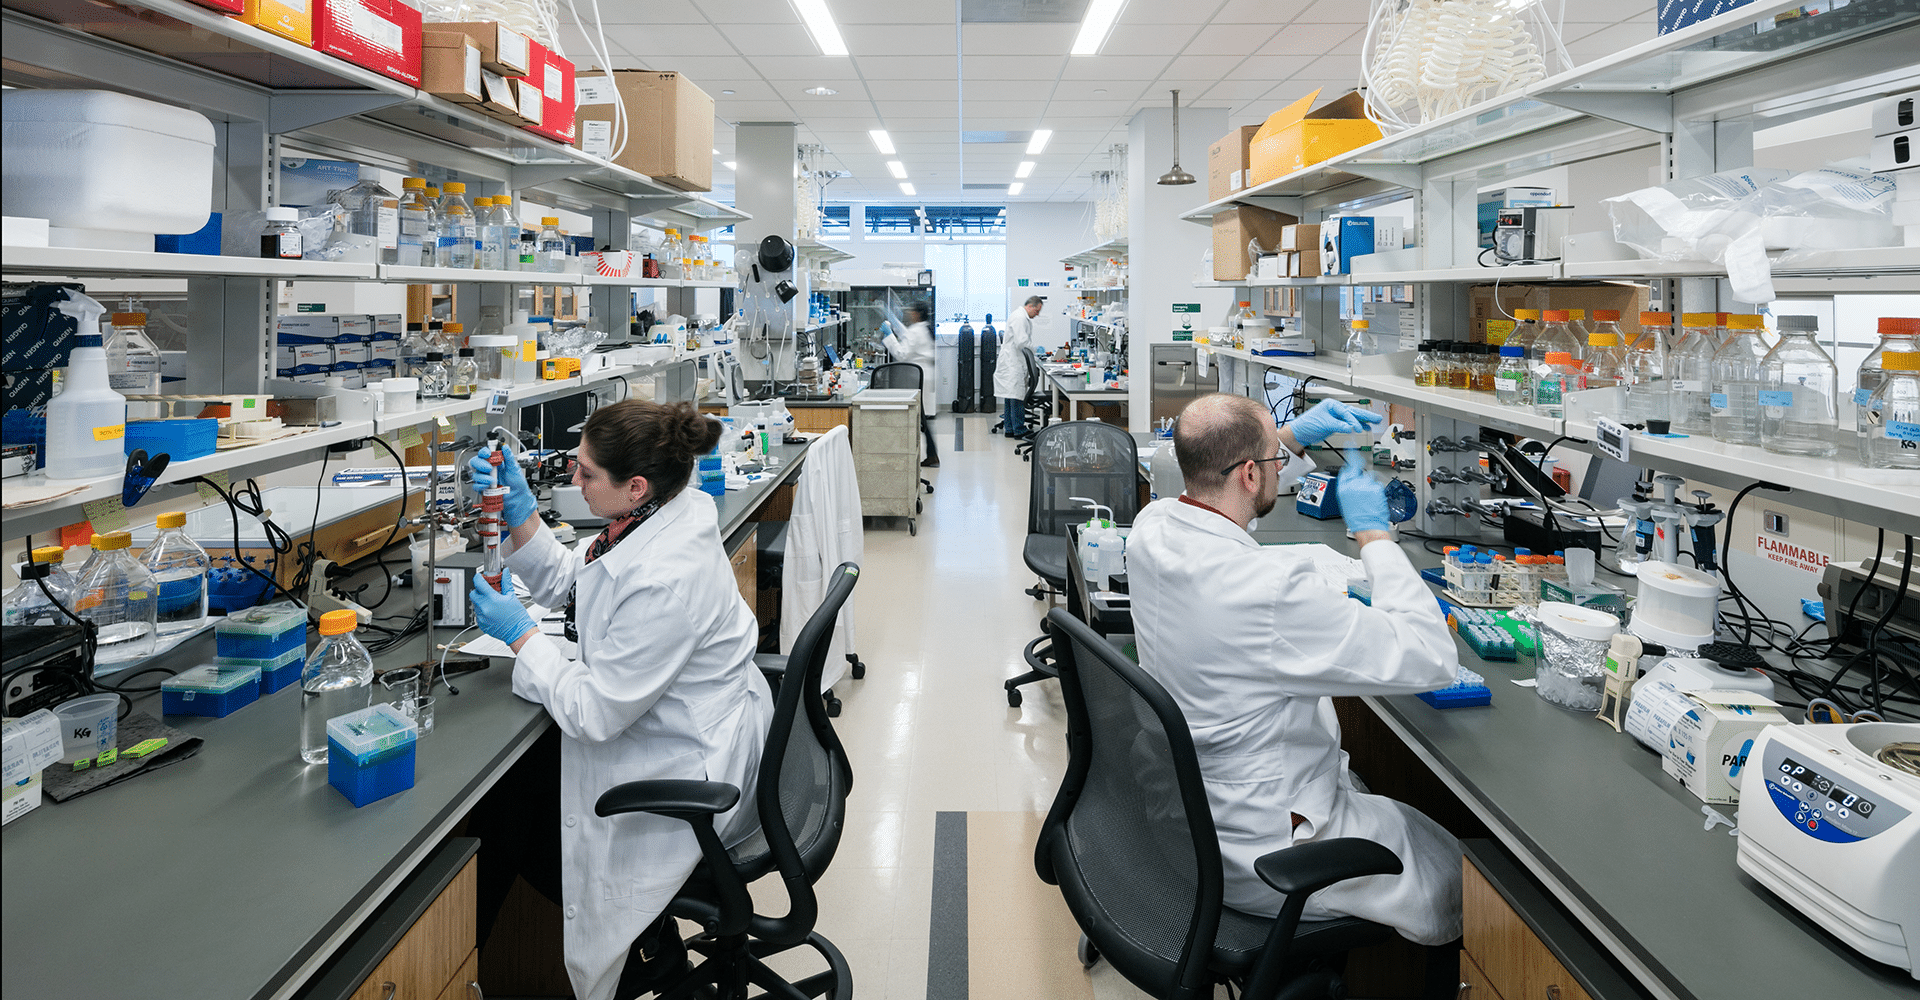 ASRC researchers working in a laboratory